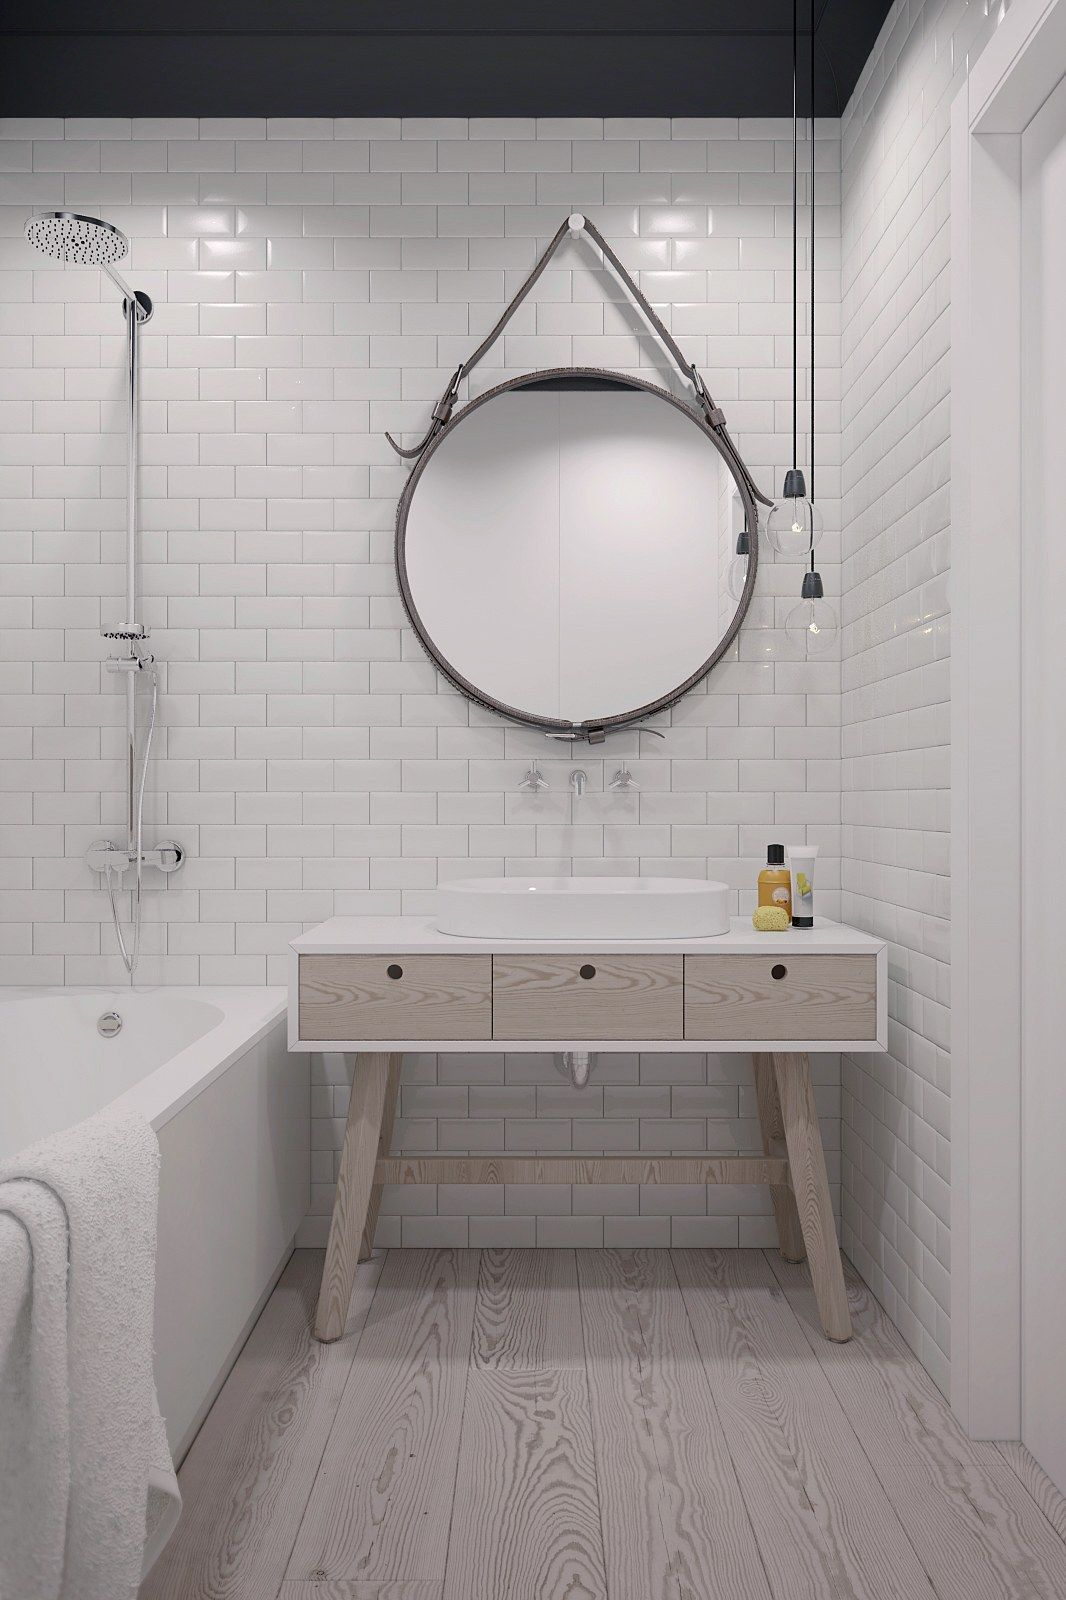 Simple bathroom decoration | New bath | Pinterest | Simple bathroom ...